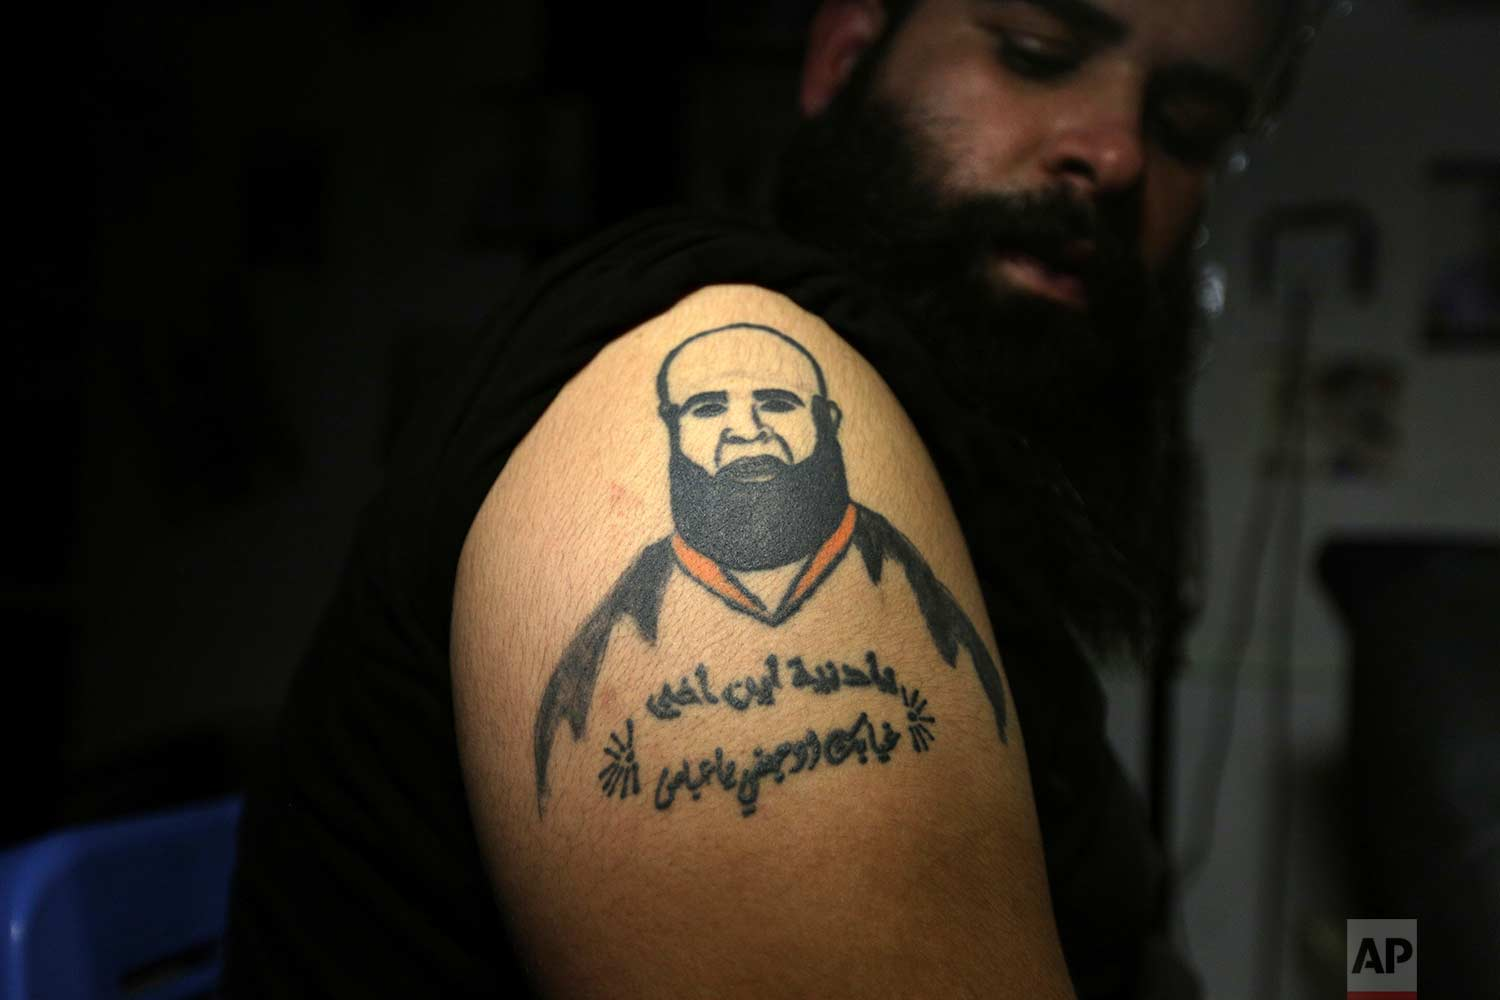 "In this Tuesday. Oct. 23, 2018, photo, Zuhair Atwan displays a tattoo of his brother, who was killed in sectarian violence, in a tattoo studio in Baghdad, Iraq. The Arabic sentence on his arm reads, ""Oh life, where is my brother? Your absence hurts me, oh Abbas."" (AP Photo/Hadi Mizban)"